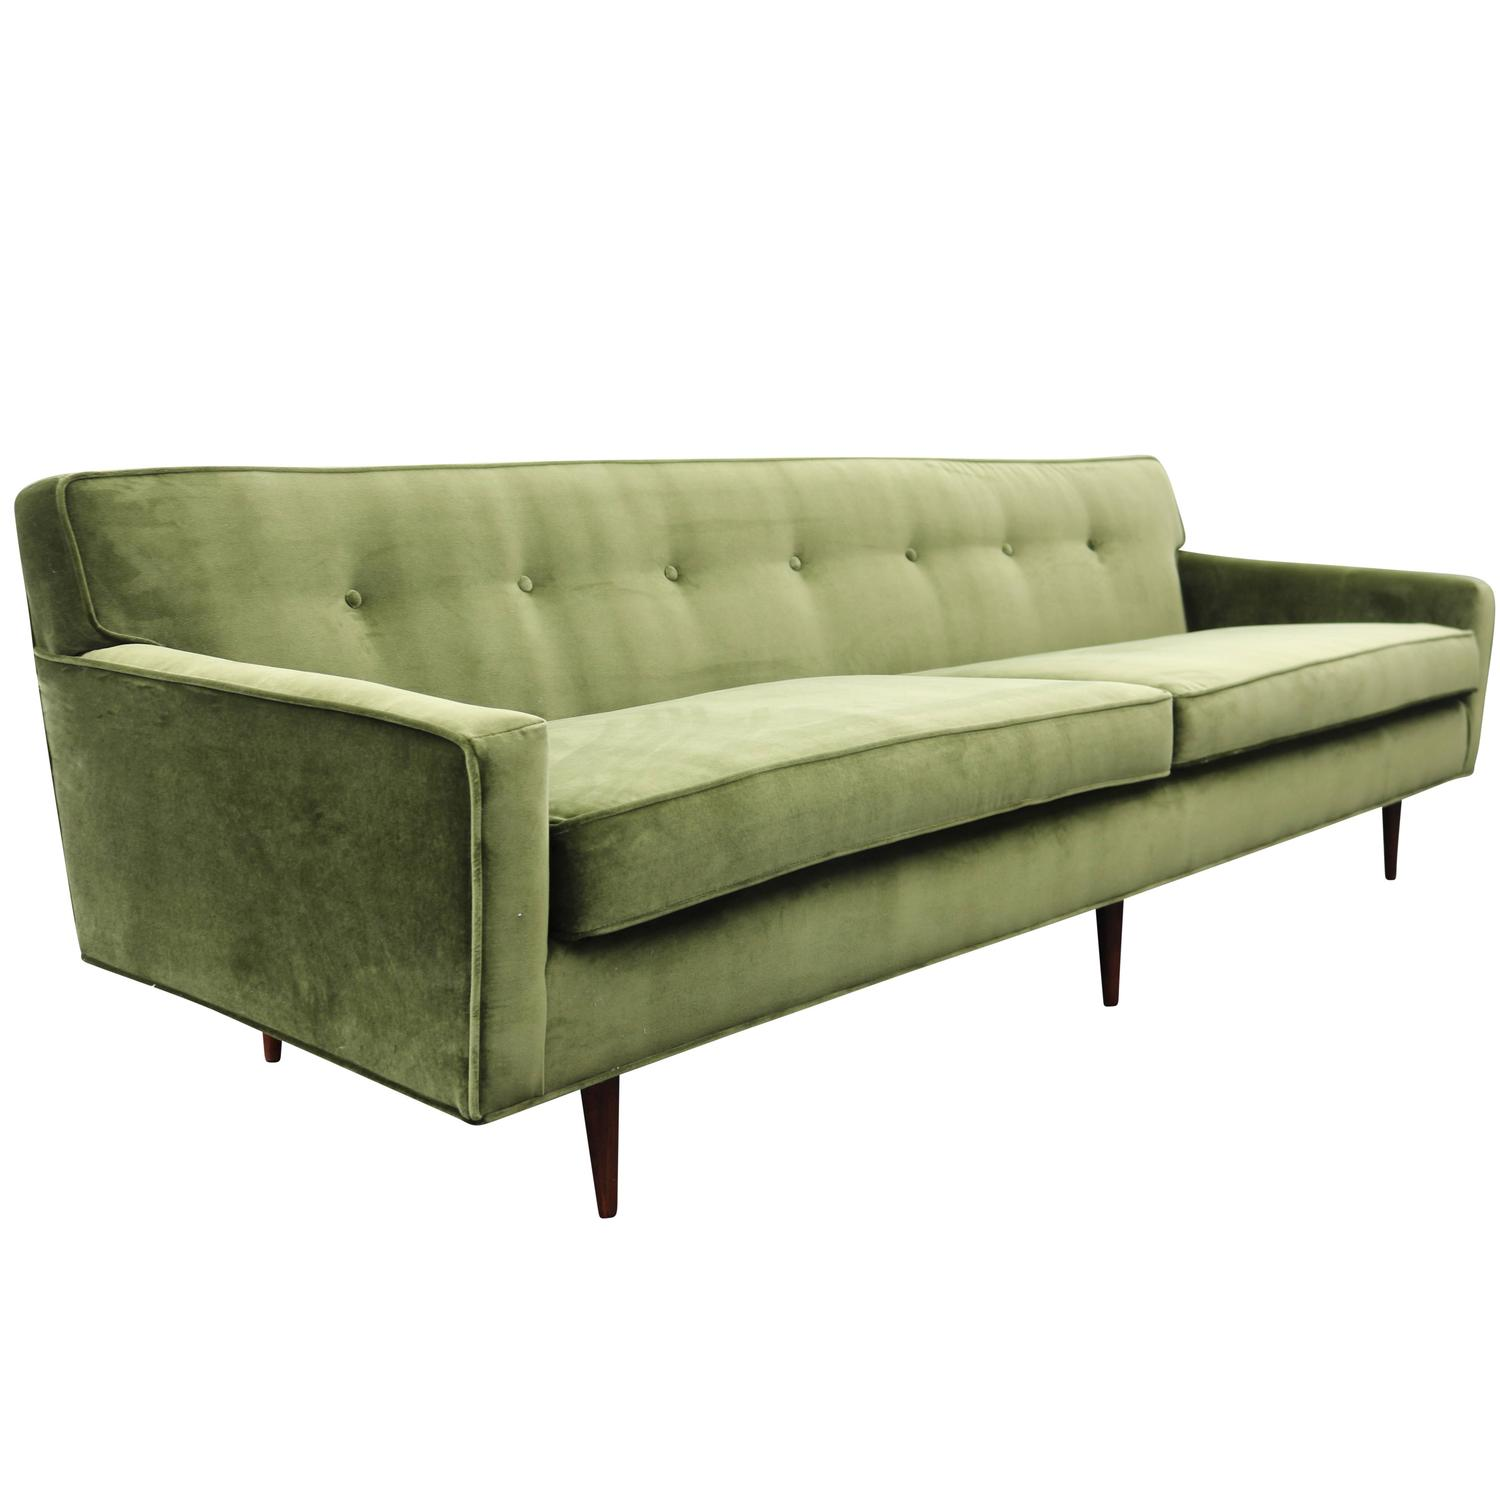 Gorgeous green velvet mid century modern sofa at 1stdibs for Modern furniture sofa